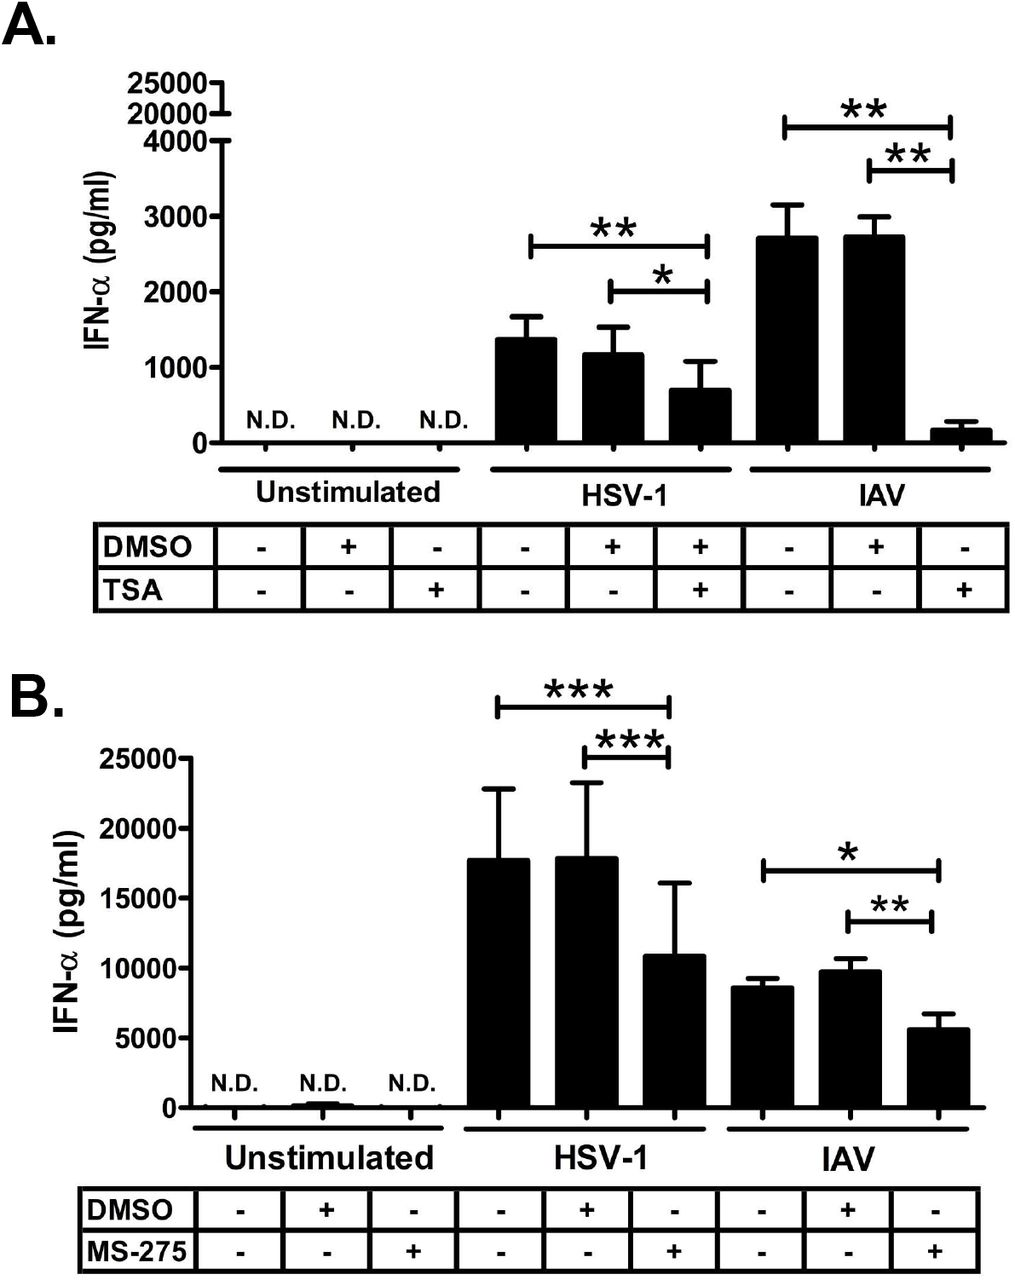 TSA and MS-275 inhibit HSV-1 and IAV-induced total IFN-α production in human pDC. PBMC were isolated and pre-treated with TSA (100 ng/ml) or DMSO vehicle control (1:1000) (A) and MS-275 (5 μM) or DMSO vehicle control (1:530) (B) for 1 hour and then stimulated with HSV-1 (MOI of 1) and IAV (MOI of 2) for 18 hours. Supernatants were collected and tested for IFN-α production by an ELISA assay. (N=4, 4 independent experiments from different donors; Data are expressed as mean ± SEM; Data were analyzed with 1-way ANOVA with Bonferroni's post test; *p